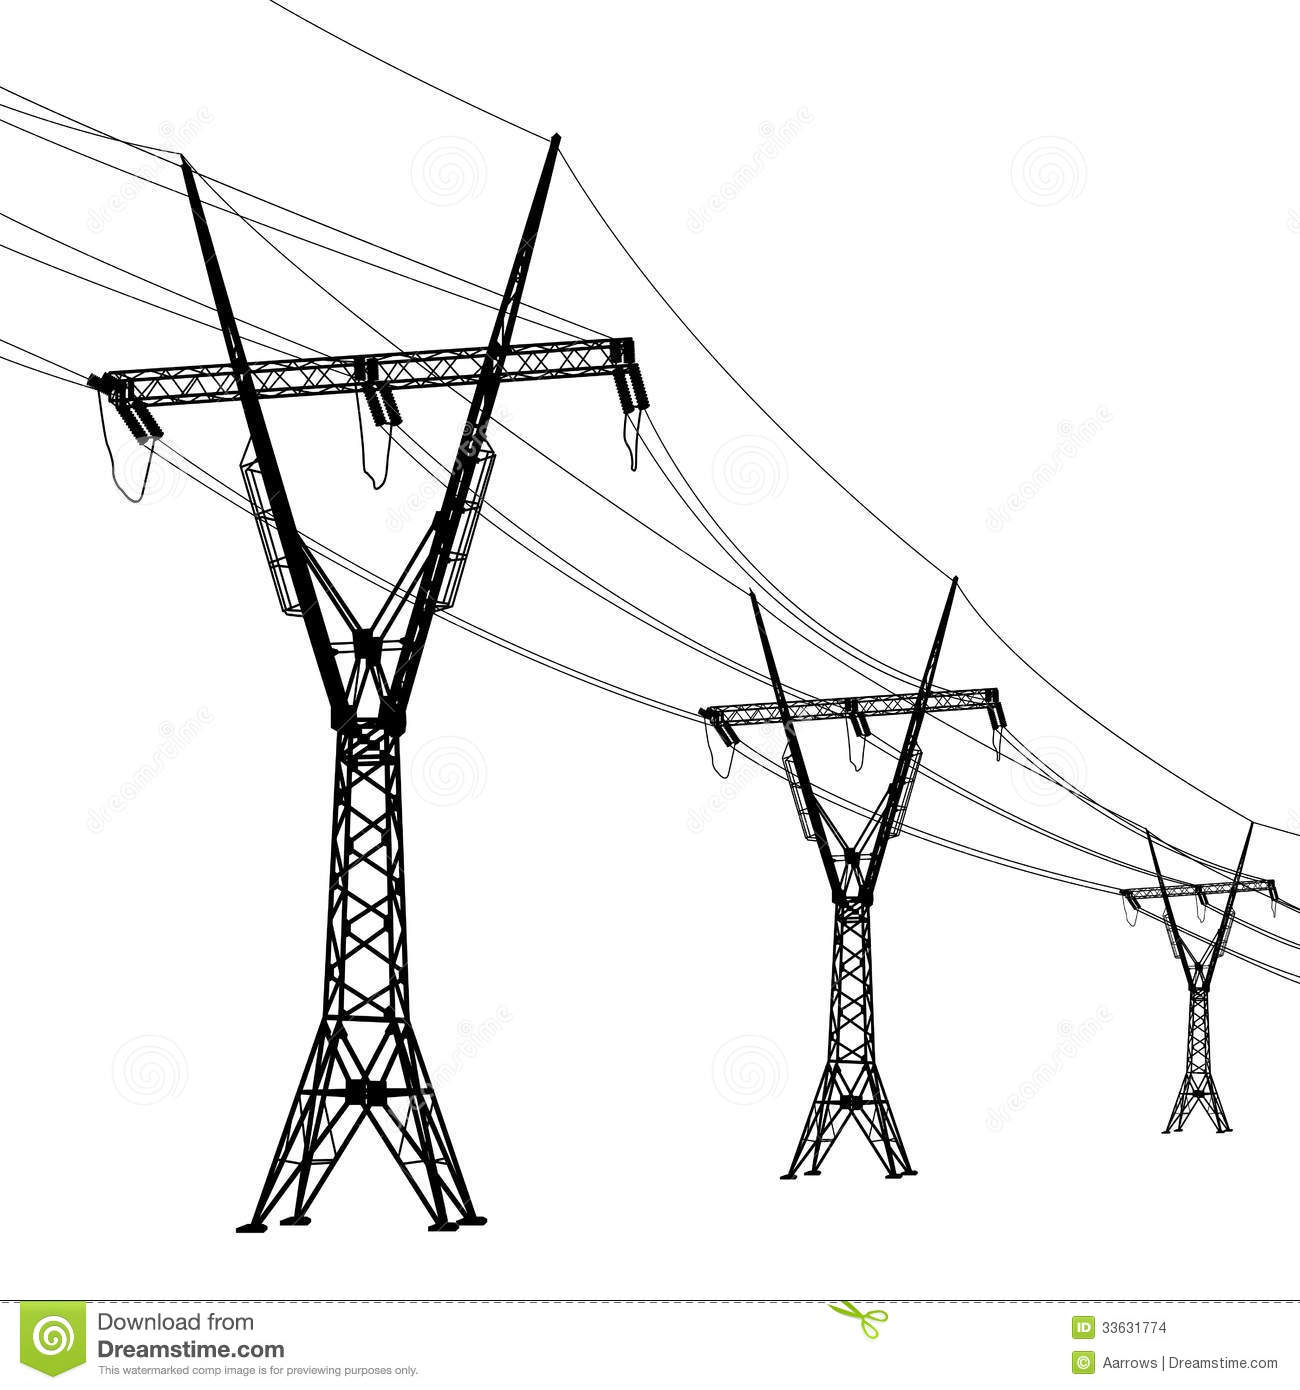 Clipart power lines.